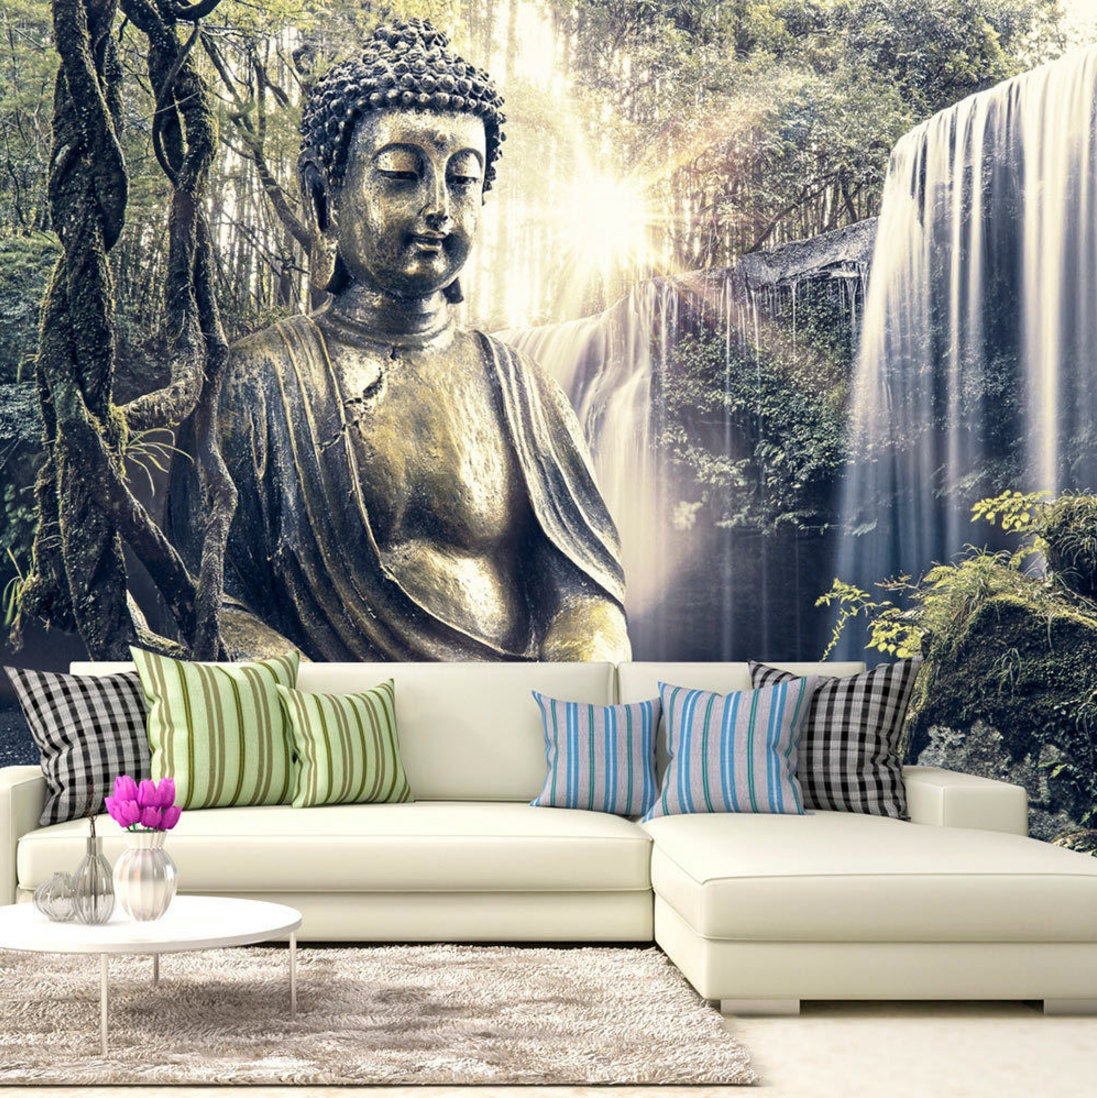 Photo wallpaper wall murals non woven 3d modern art buddha for Art mural wallpaper uk